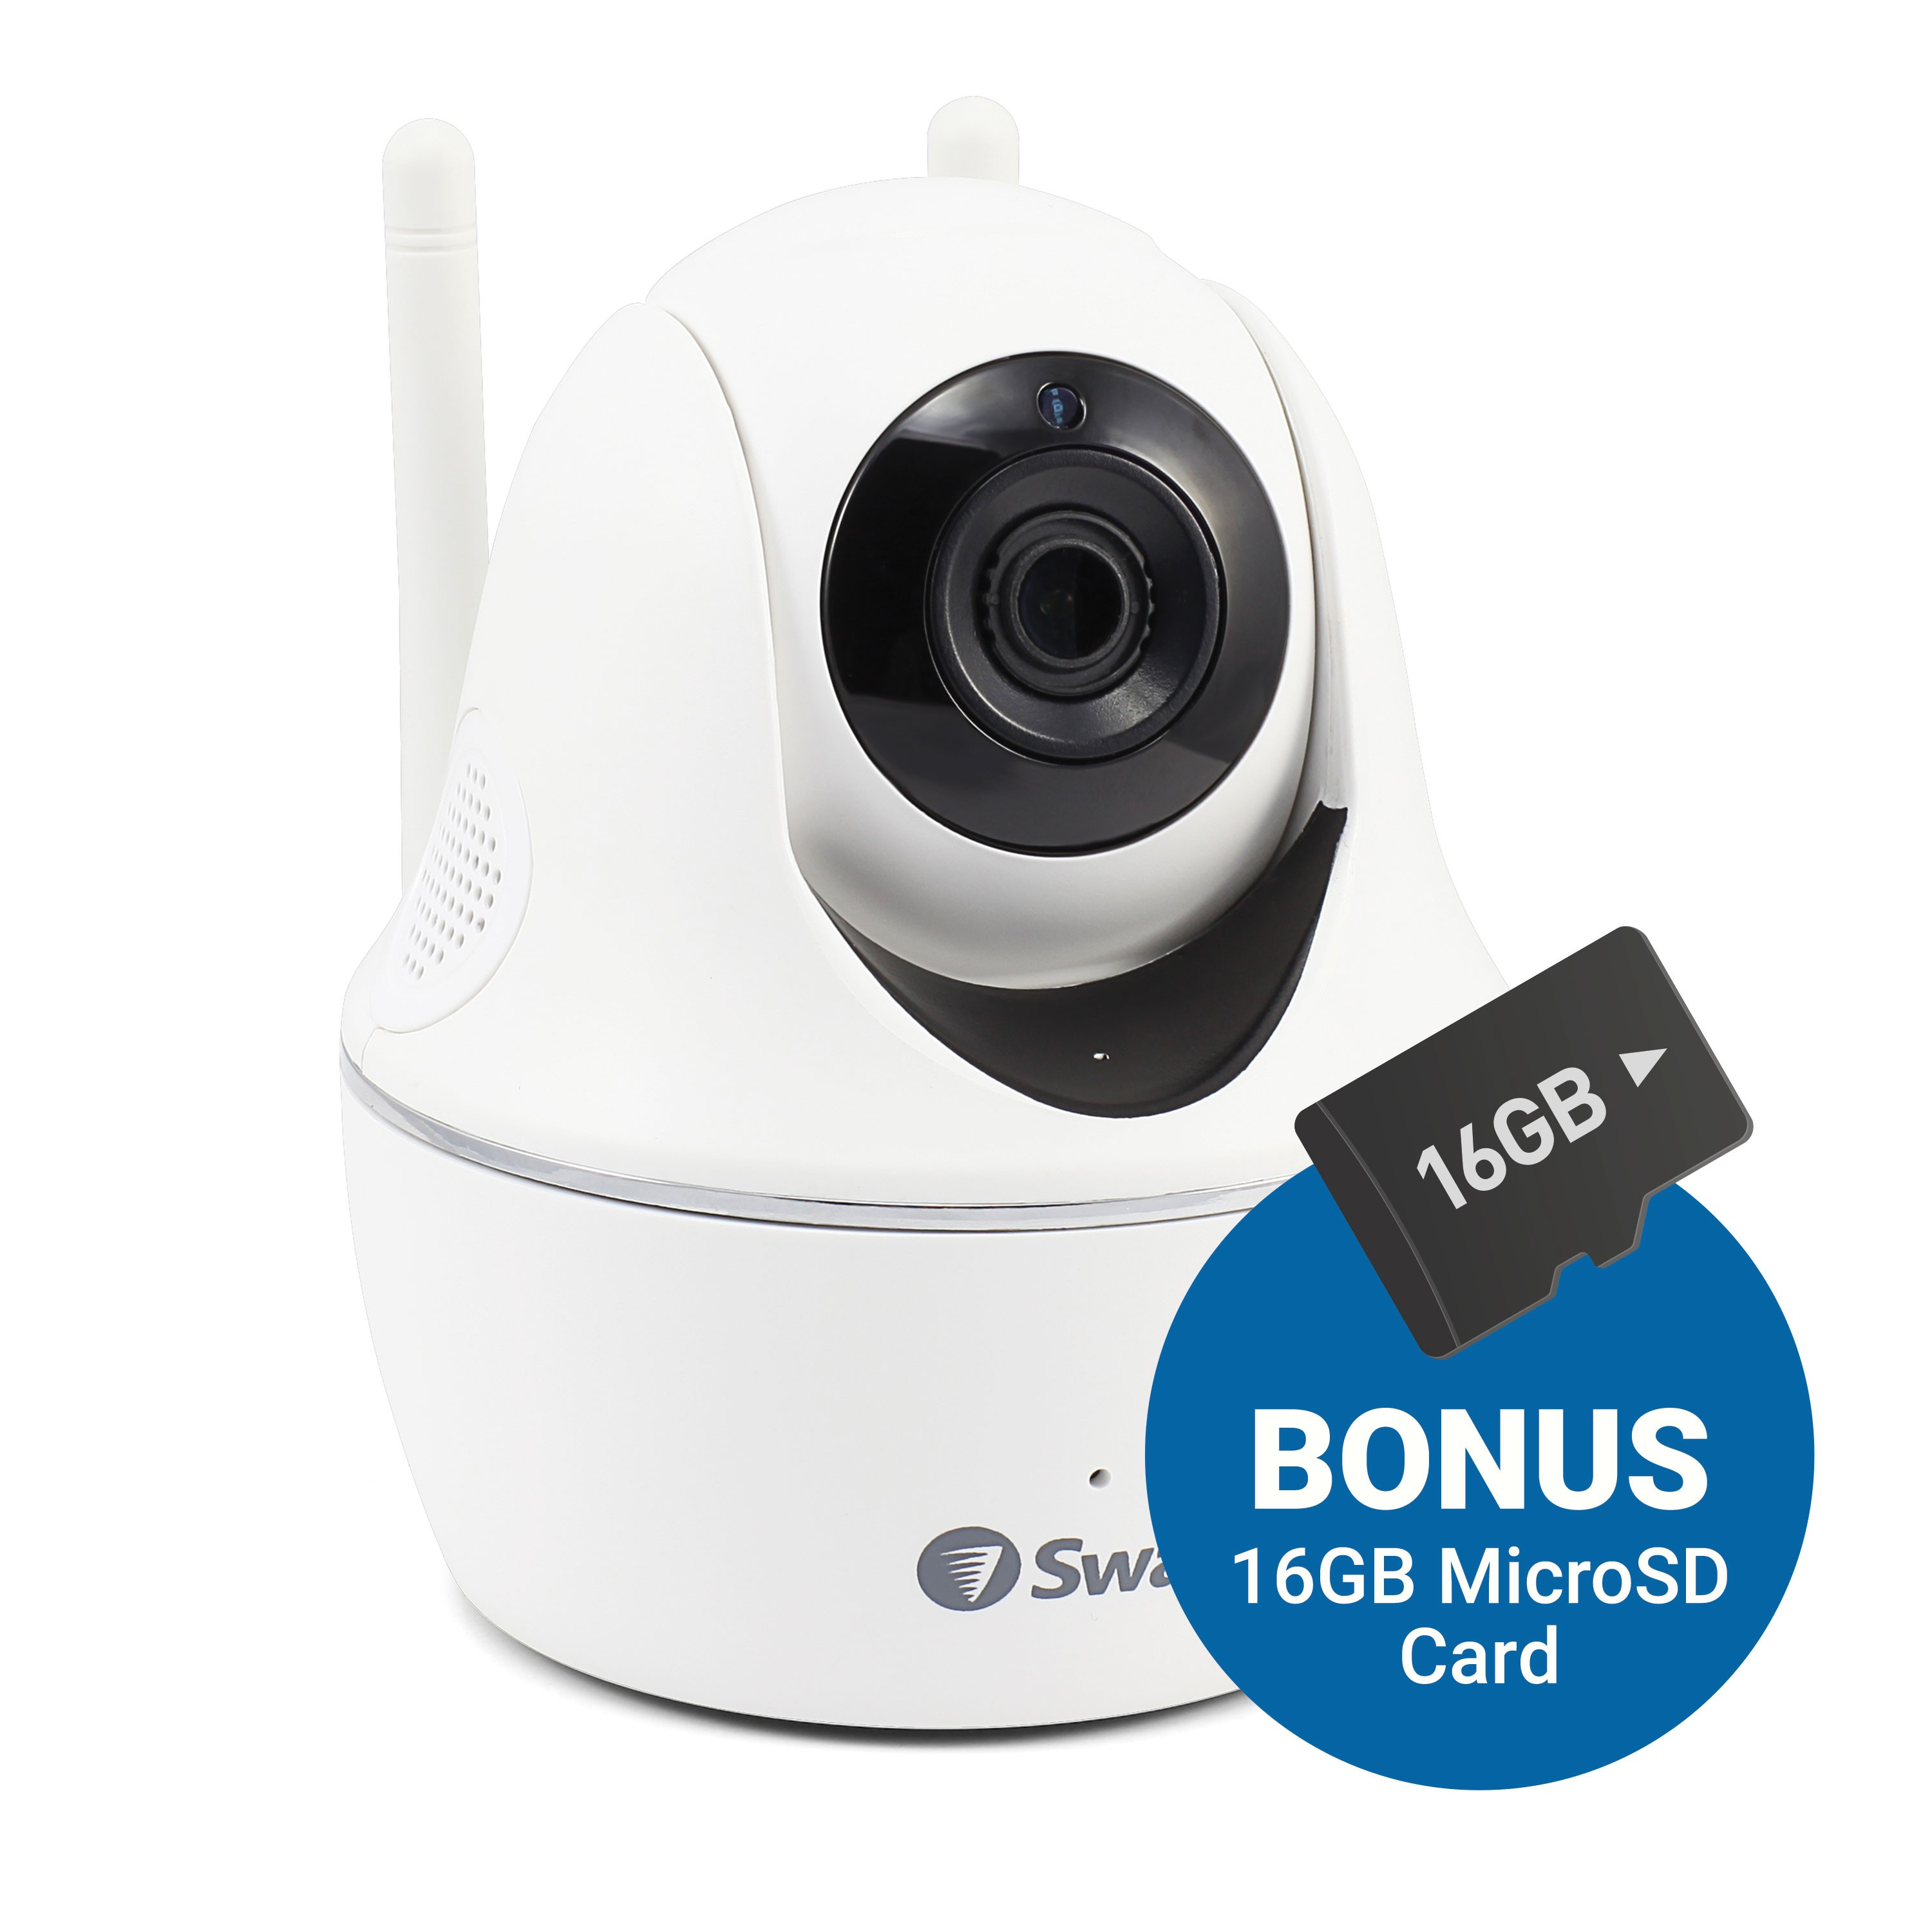 Swann Wireless Pan & Tilt Security Camera: 1080p Full HD Camera with Audio & Remote Control via App with 16GB Micro SD Card - PTCAM16G